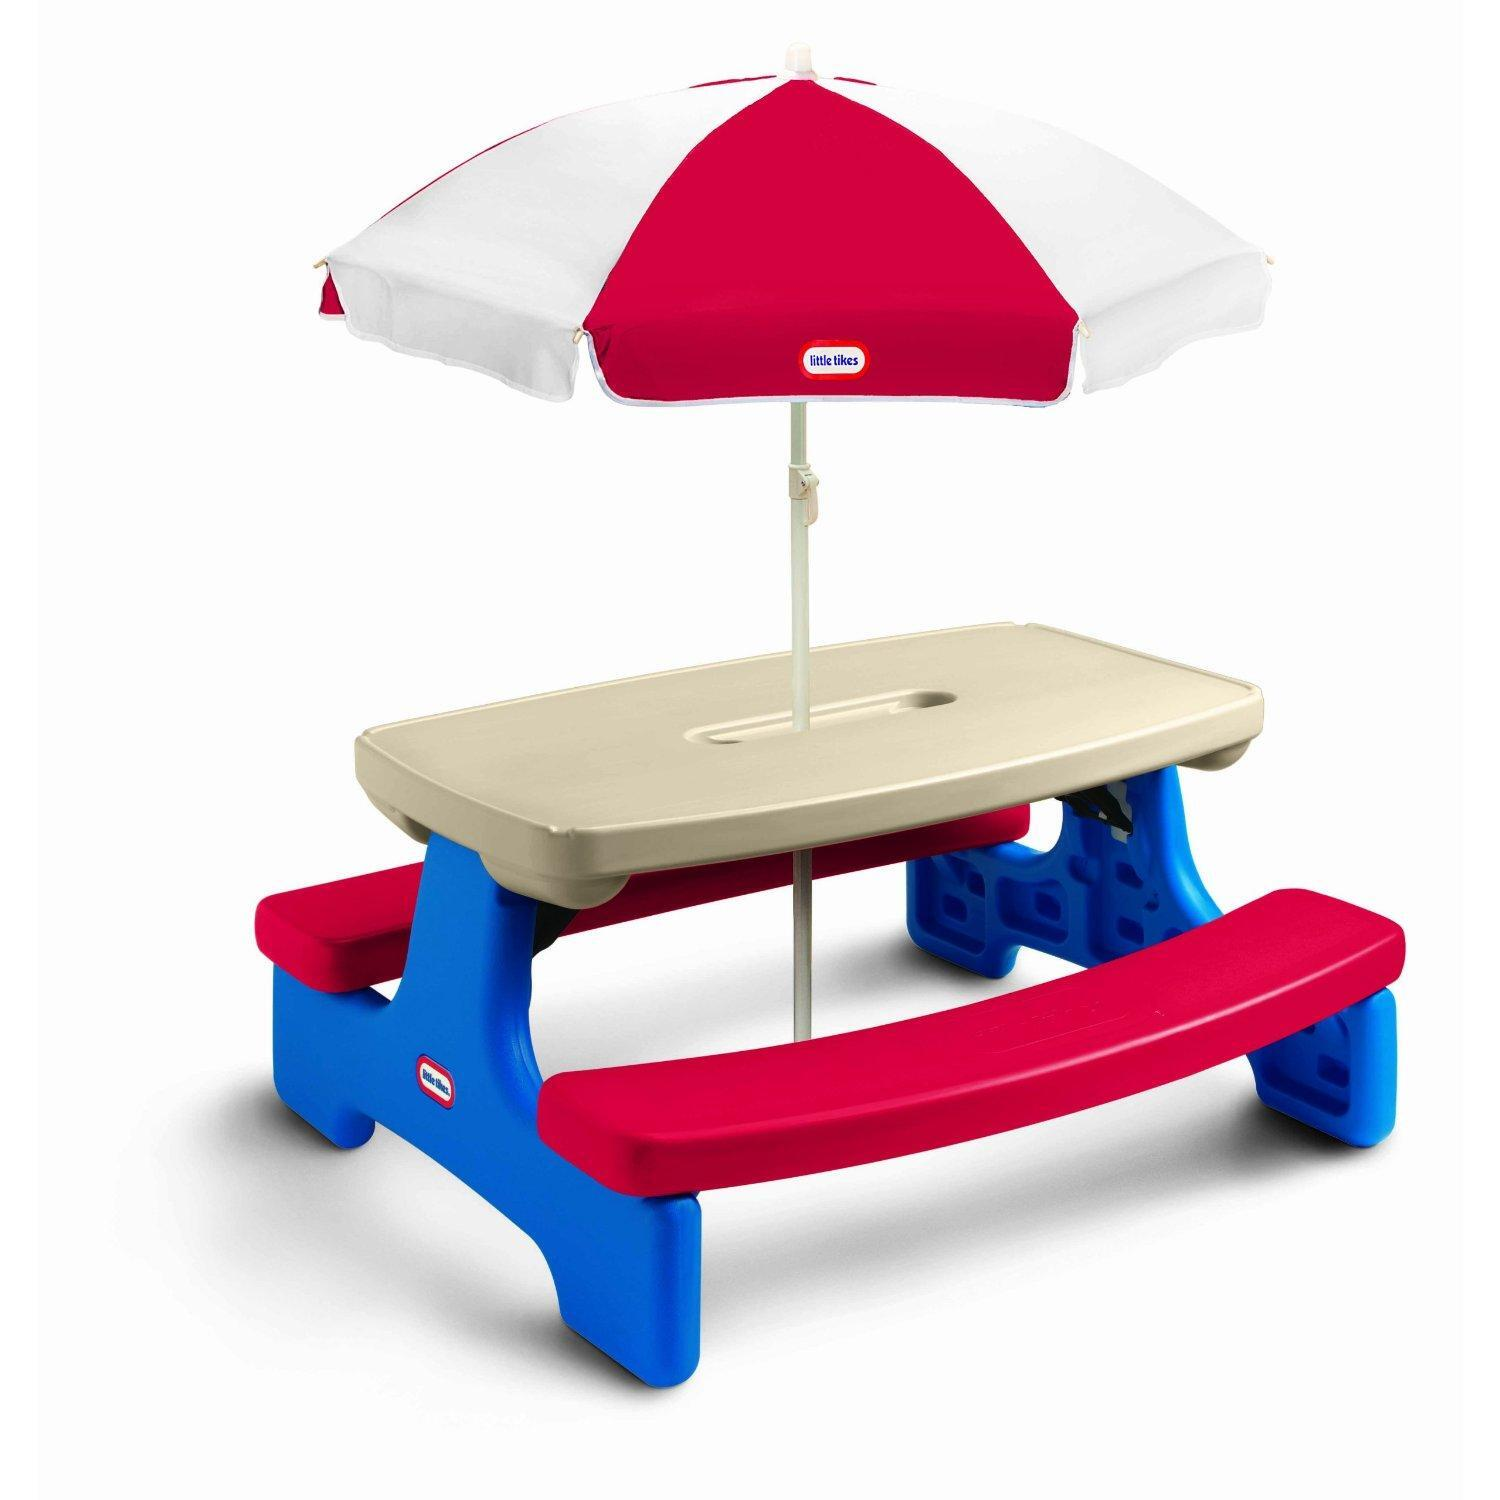 little tikes table and chairs set toys r us burgundy chair covers wedding easy store picnic with umbrella by oj